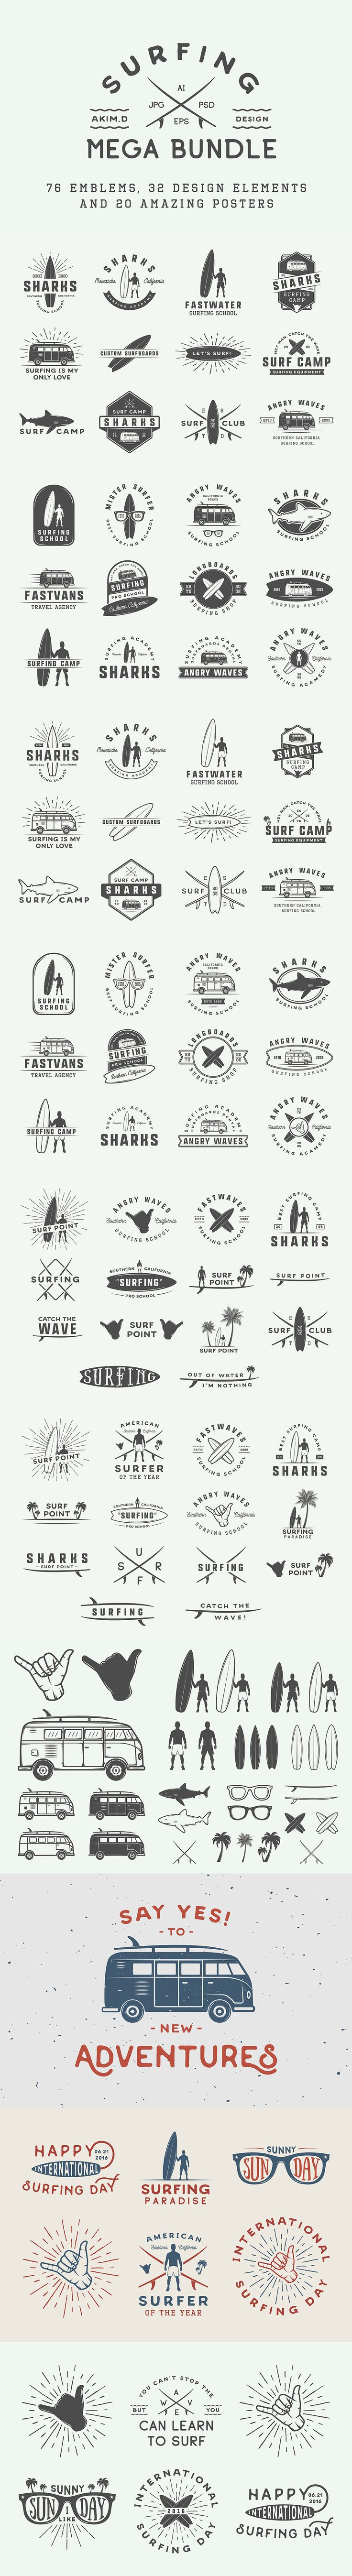 Set of Vintage Surfing Emblems. Download here: https://creativemarket.com/AkimD/721895?u=ksioks